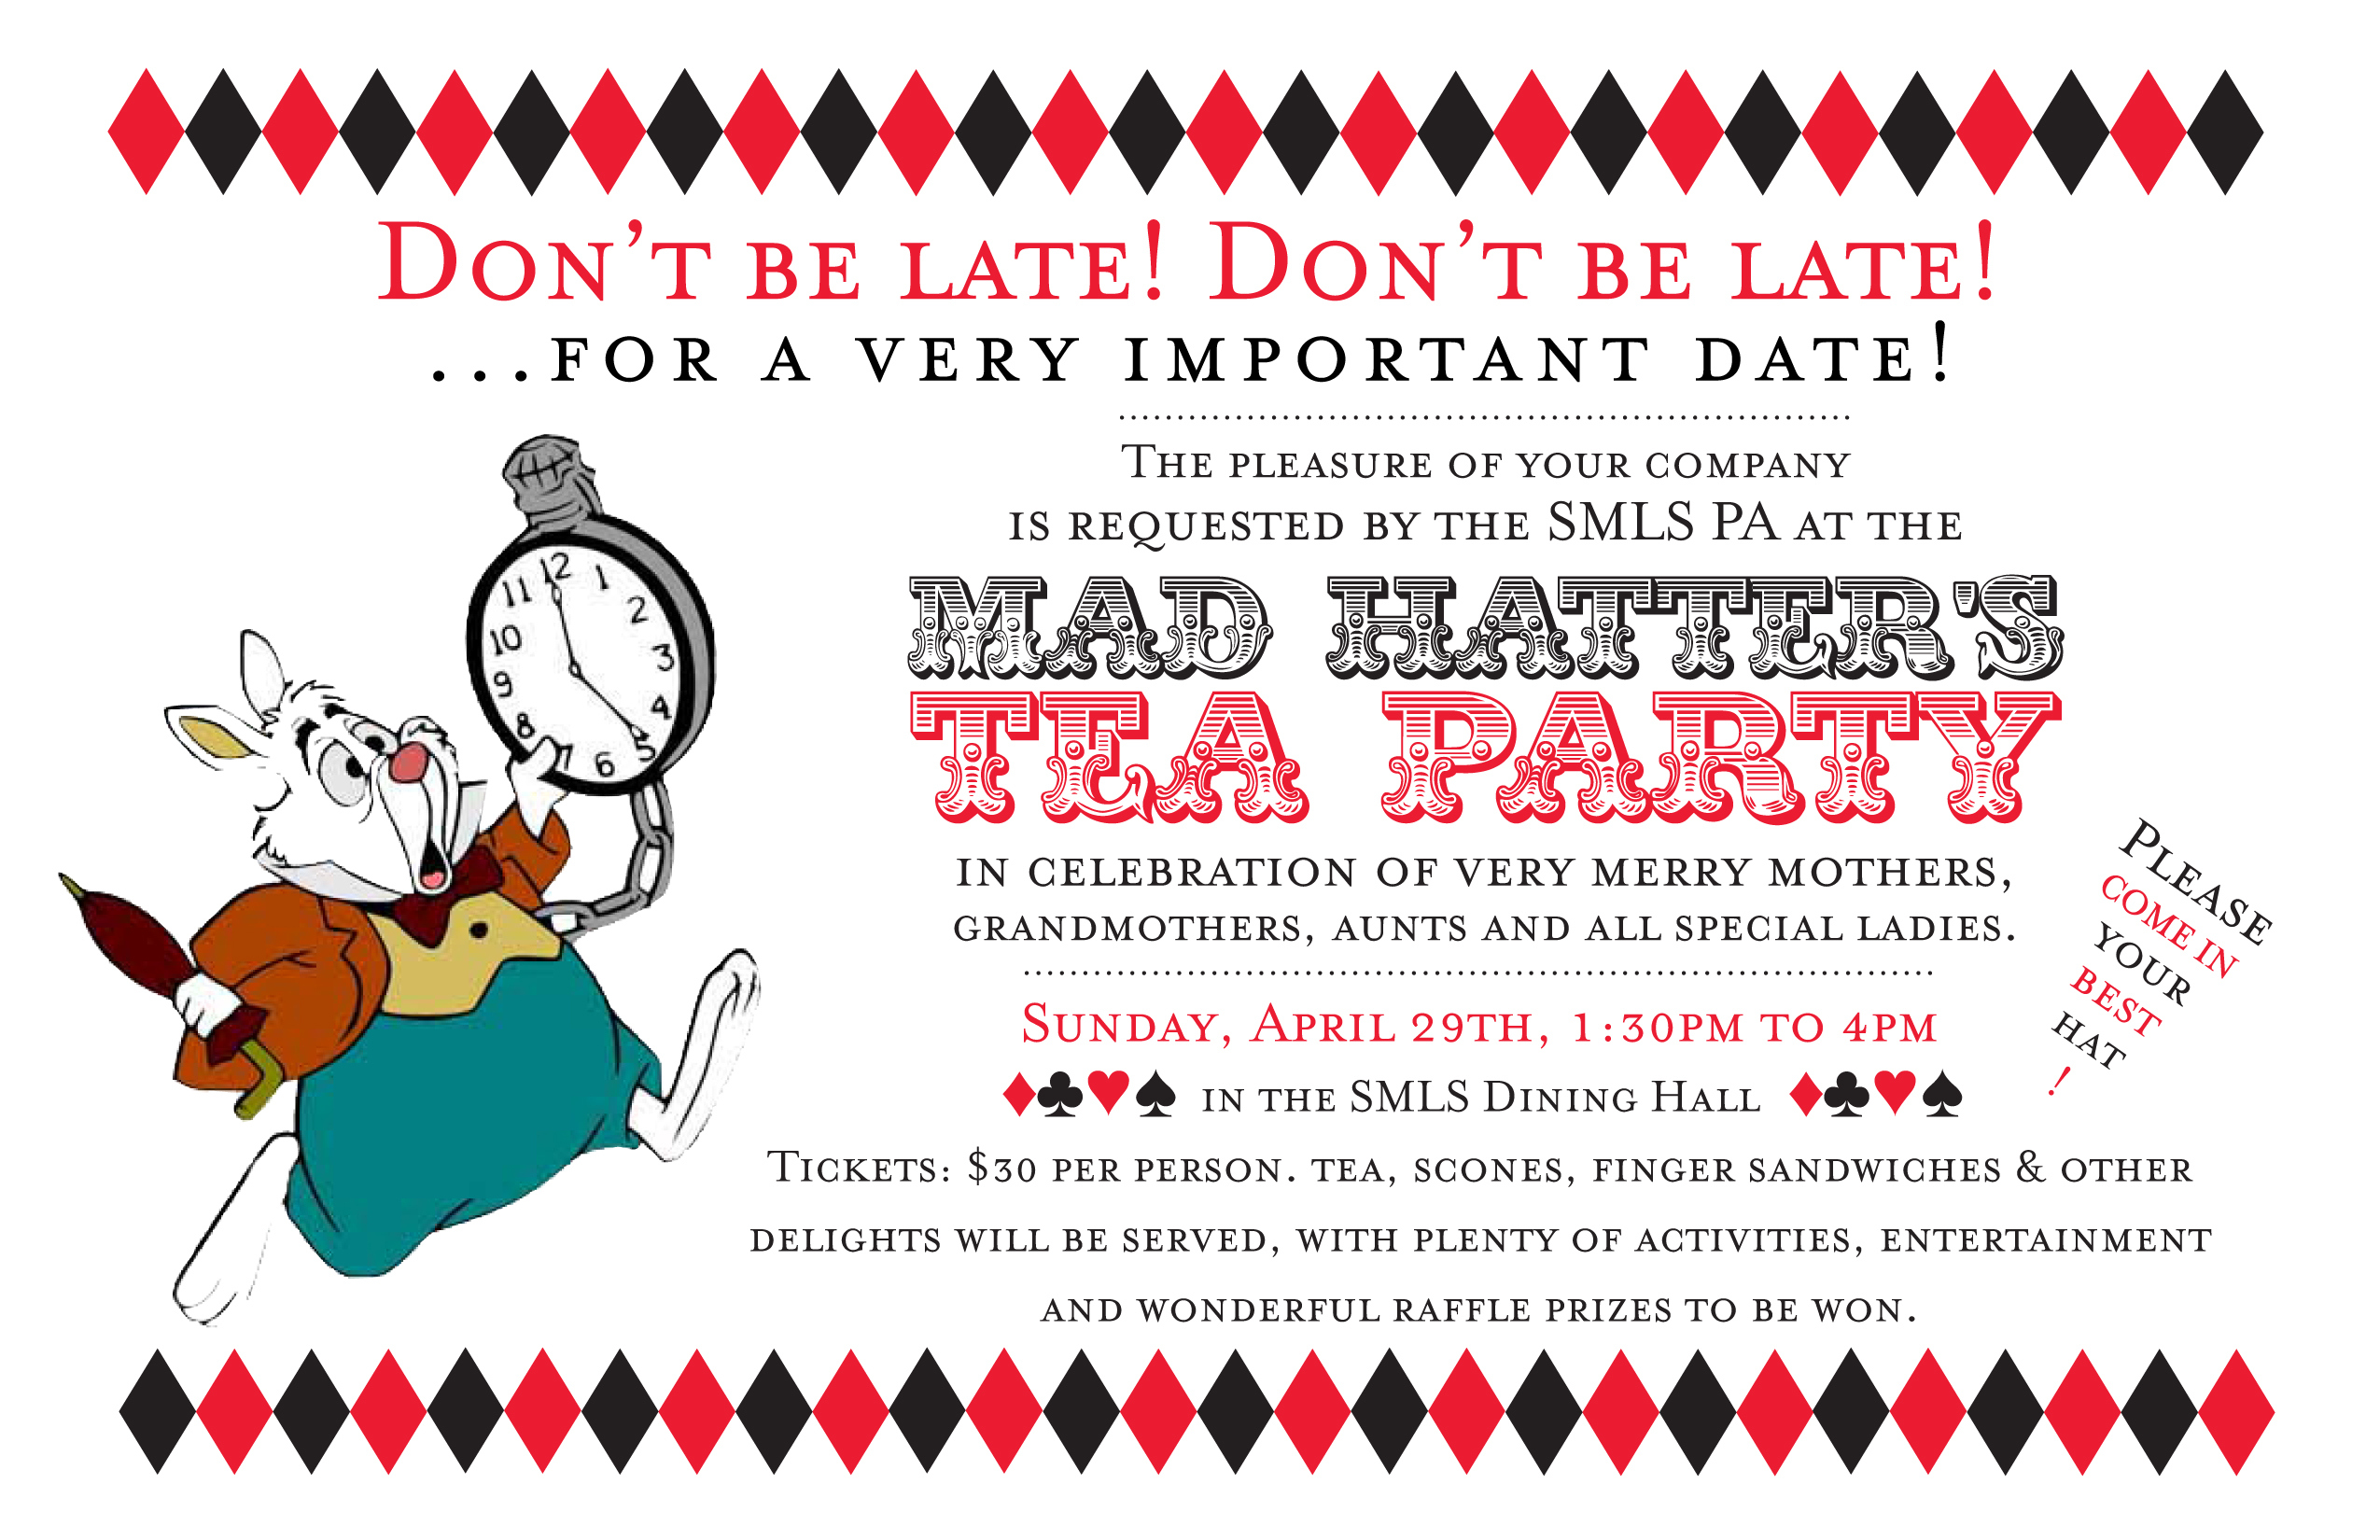 mad hatter tea party birthday invitation wording ; kids-tea-party-invitation-wording-mad-hatter-birthday-invitations-alanarasbach-com-2